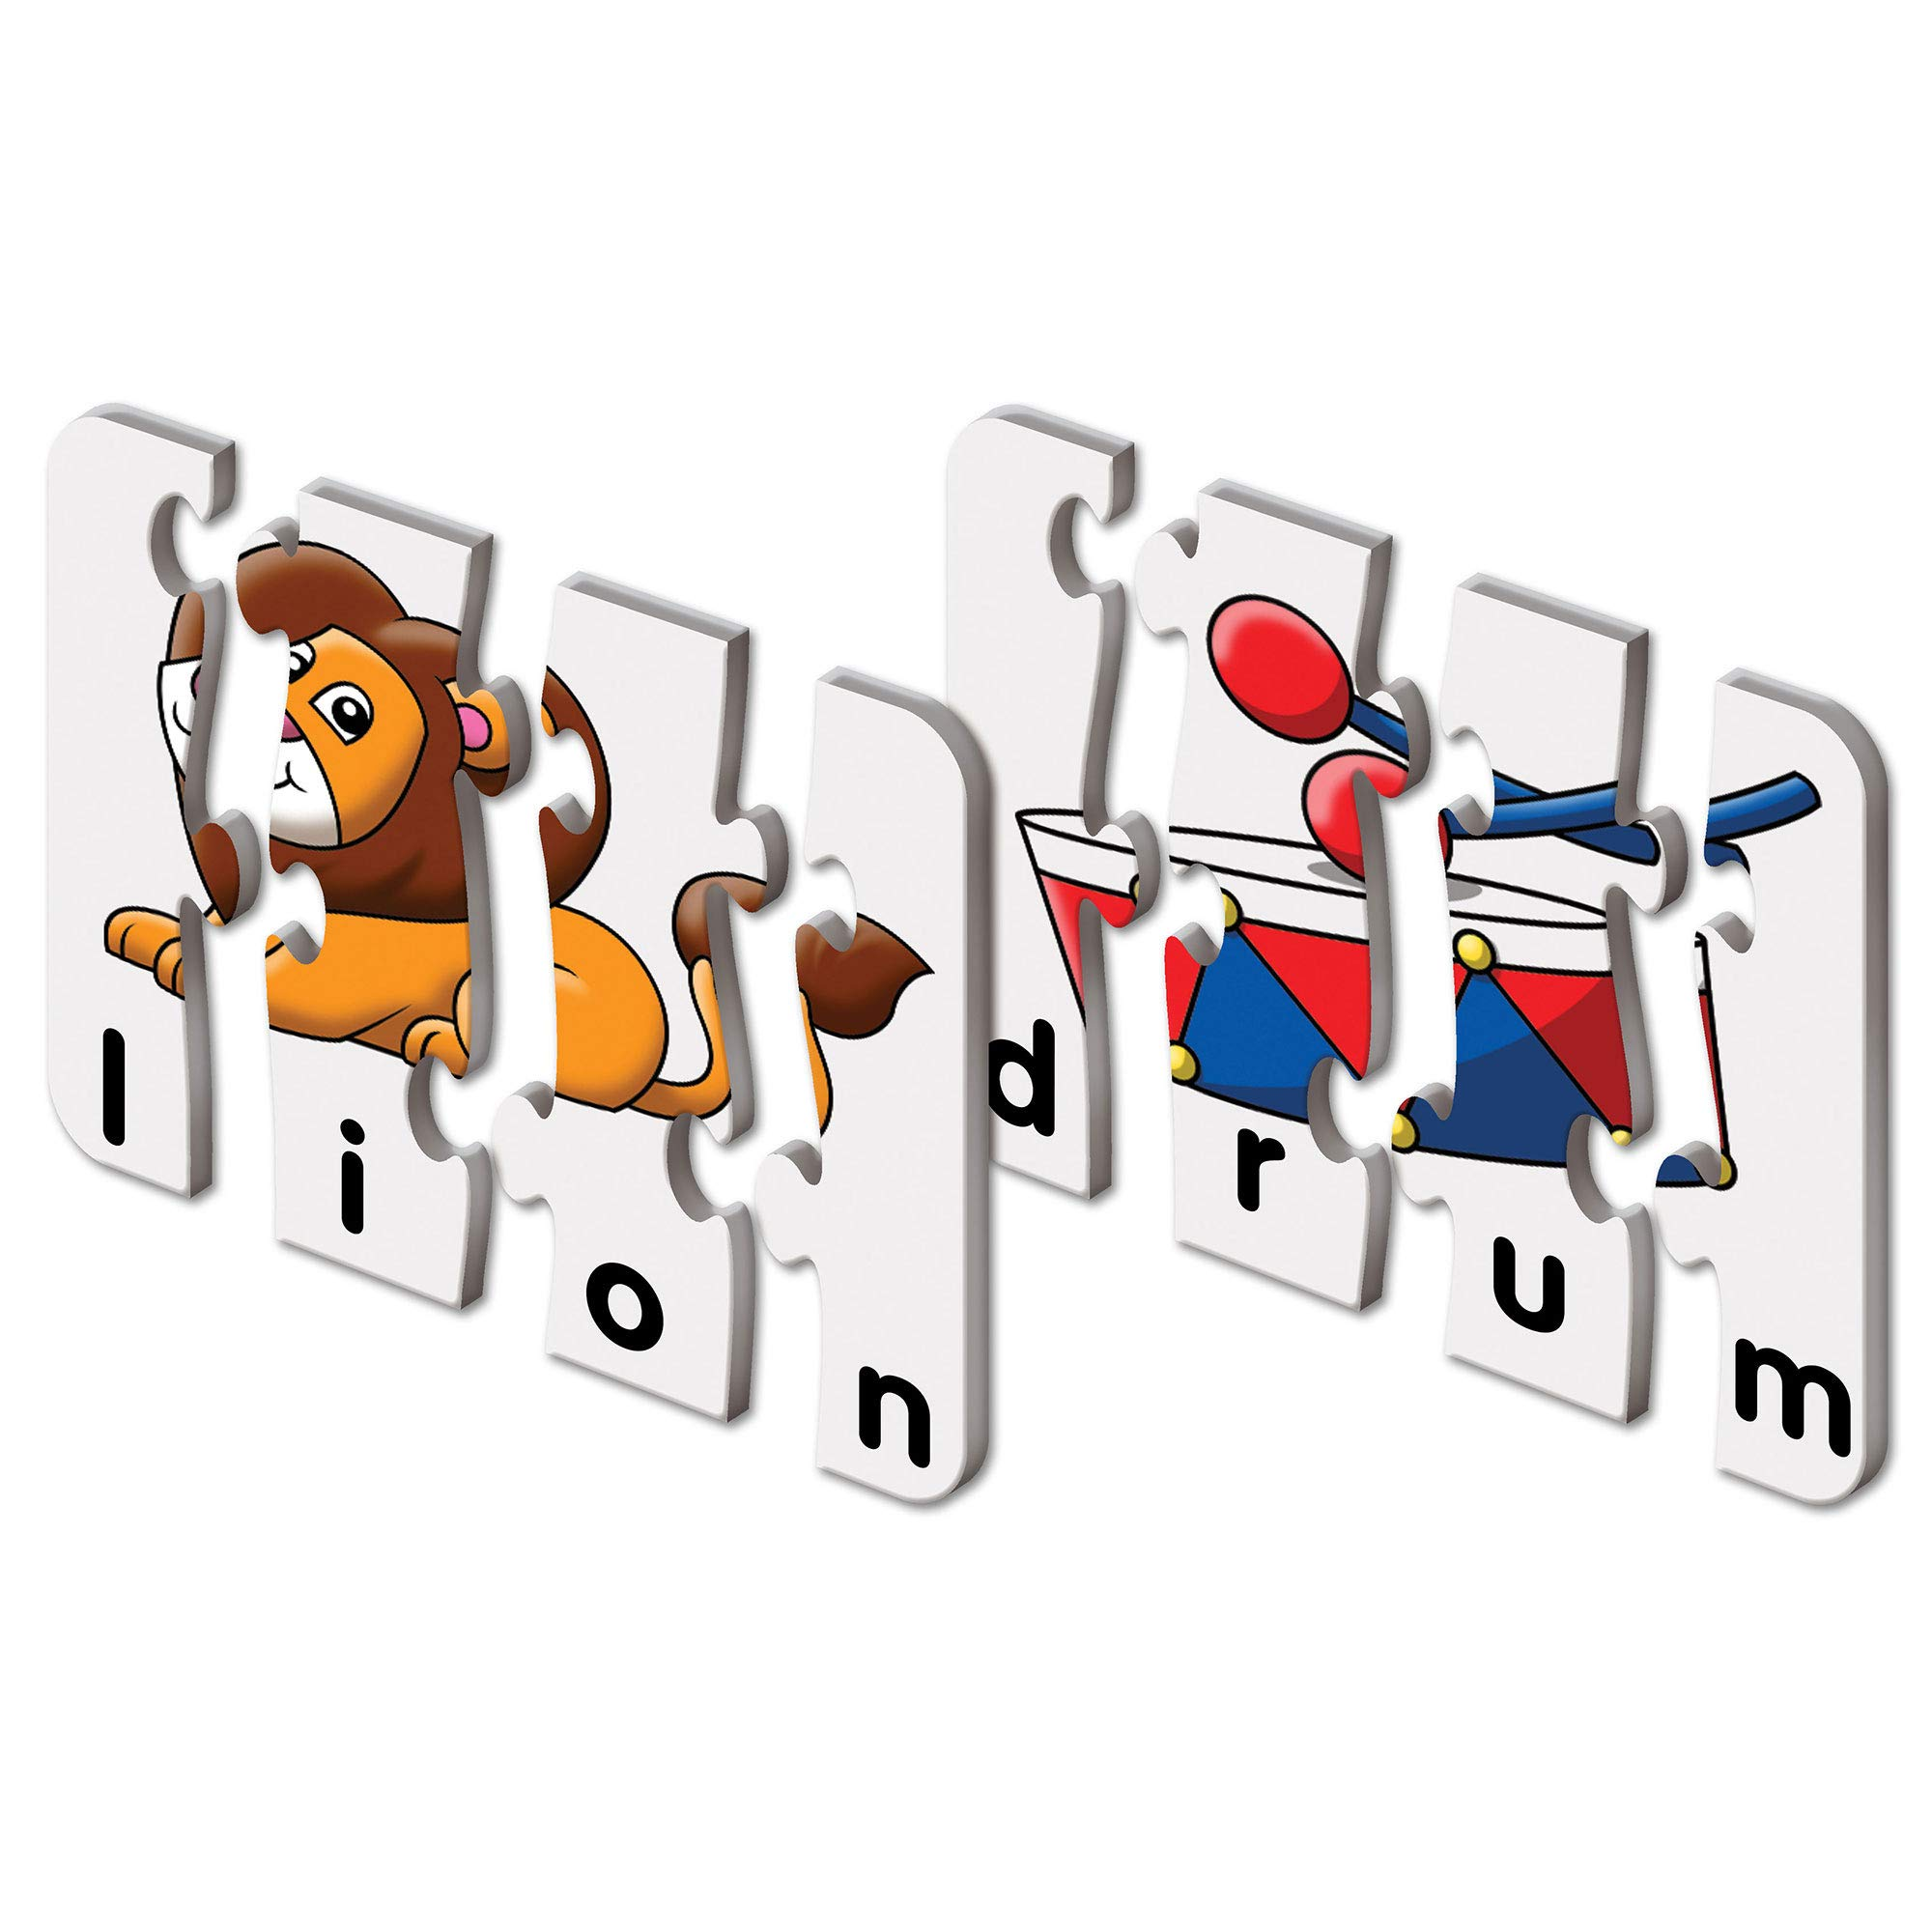 The Learning Journey: Match It! - 4 Letter Words - 20 Piece Self-Correcting Spelling Puzzle with Matching Images - Spelling Puzzles for Kids Ages 3-5 - Award Winning Toys